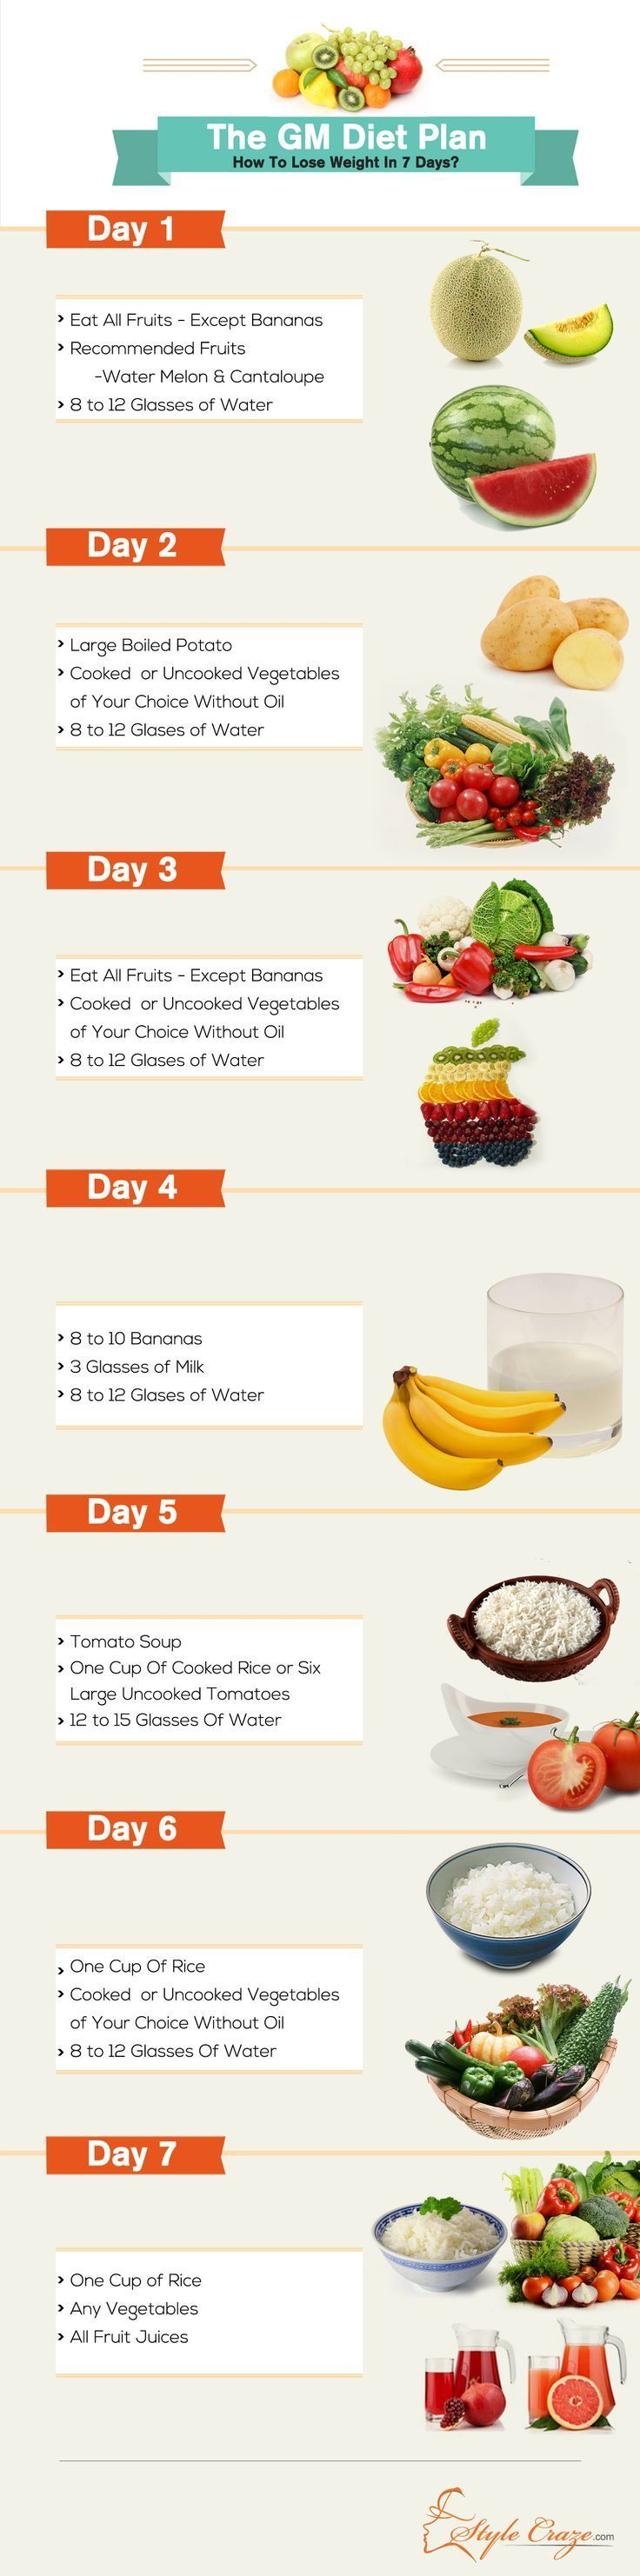 Best meal replacement shakes for weight loss 2015